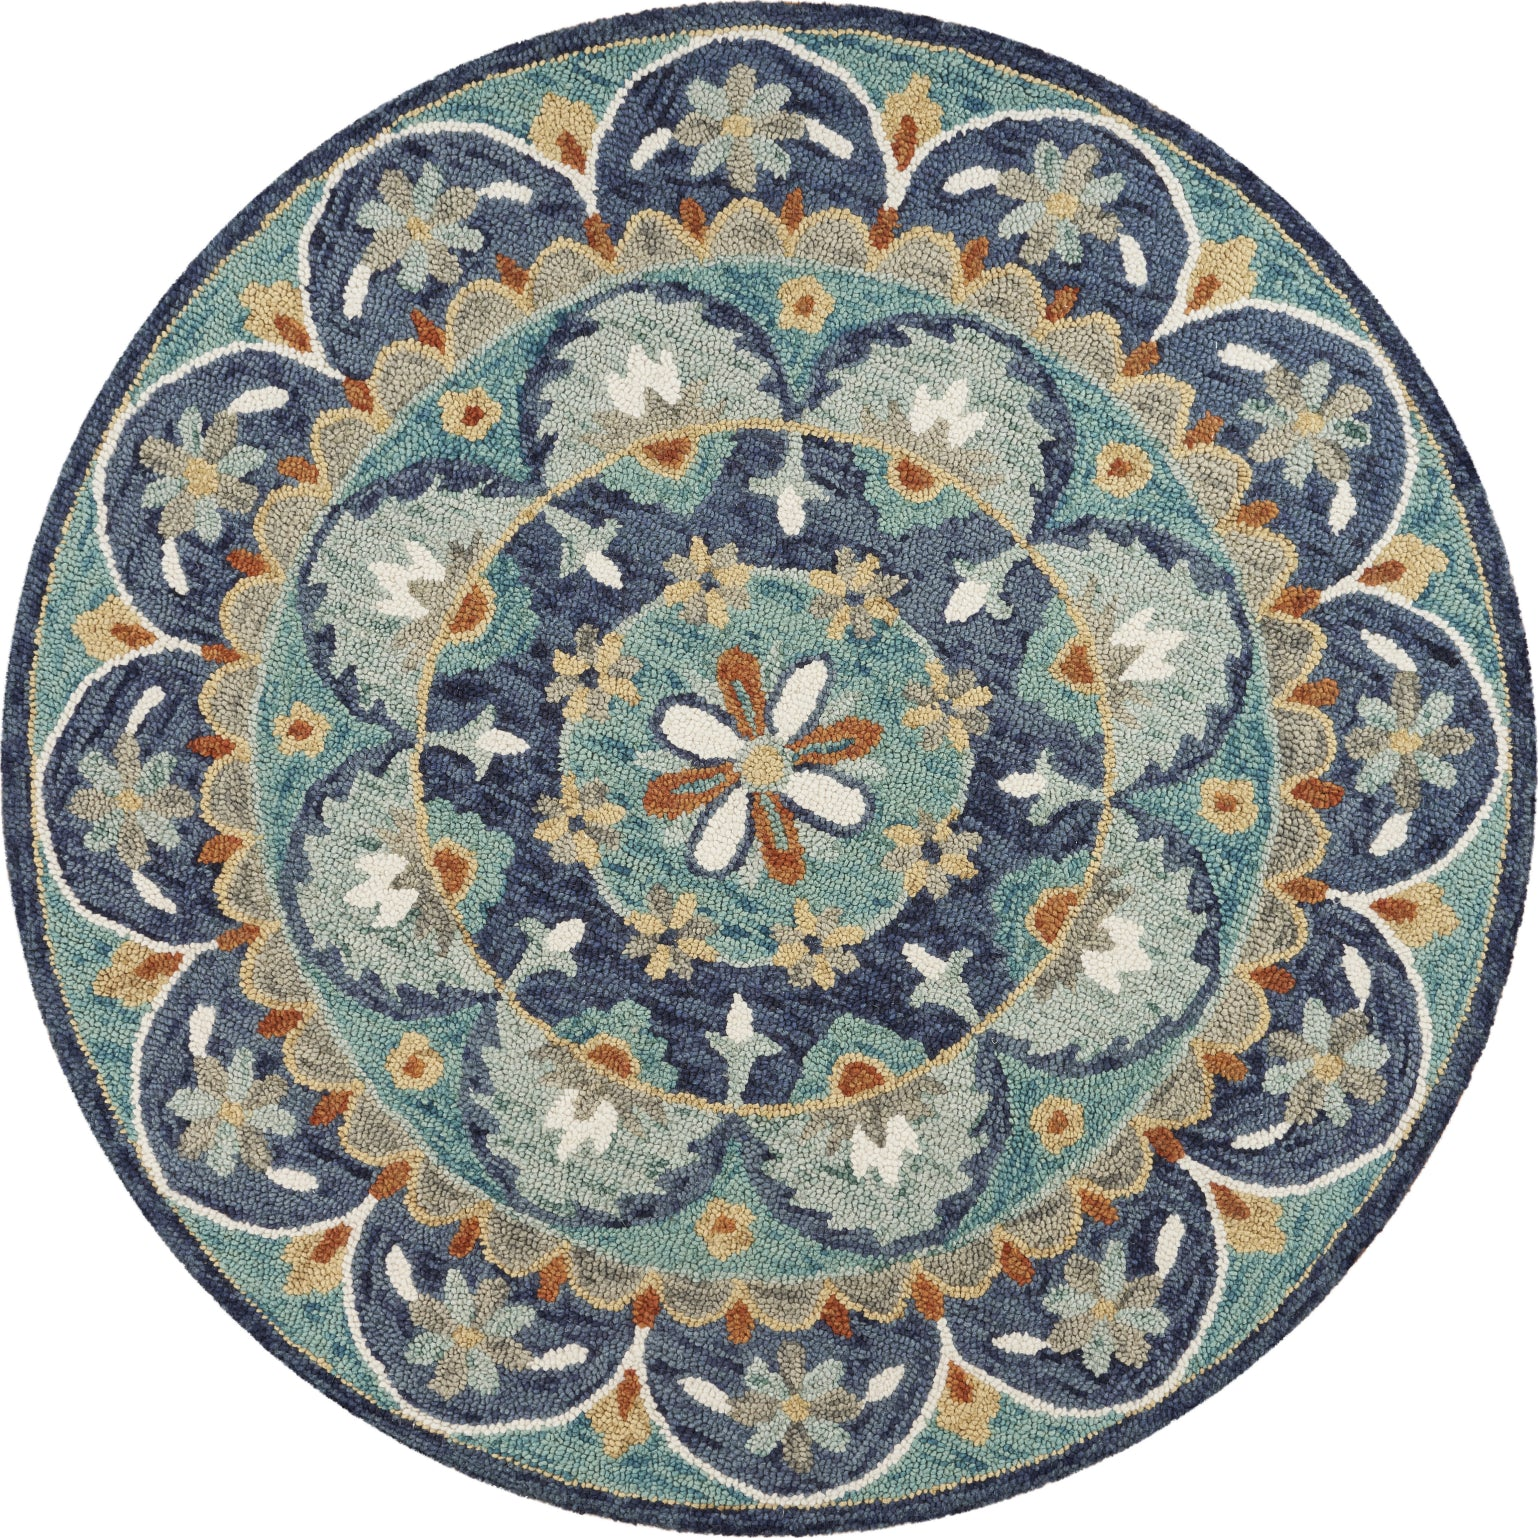 LR Resources Dazzle Floral Spin Teal / Blue Area Rug main image